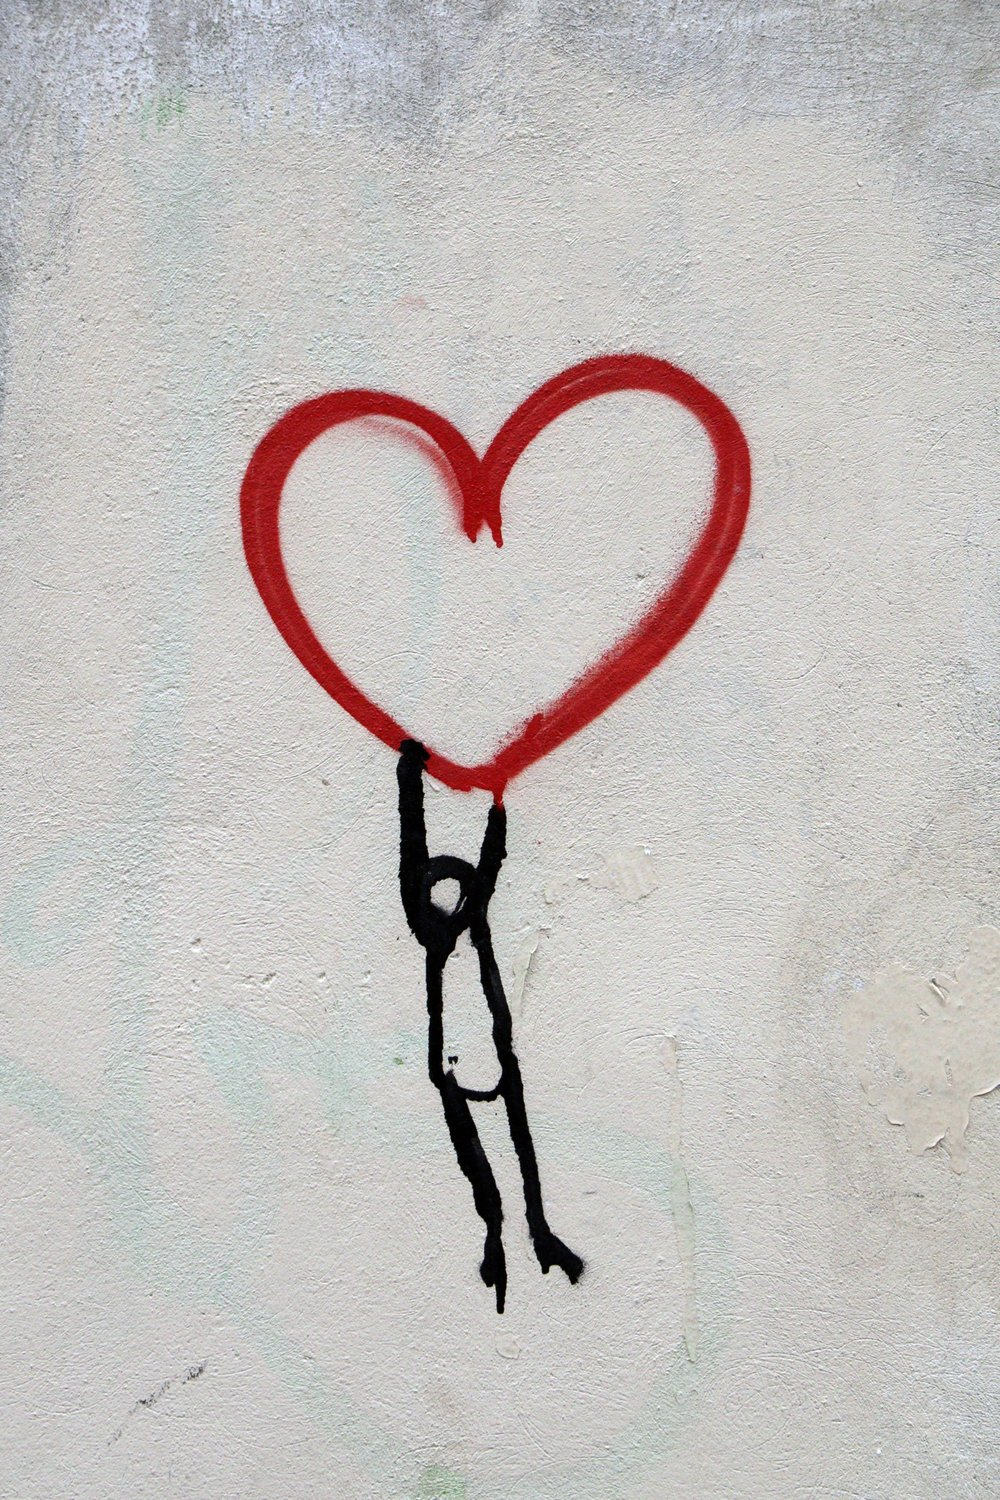 stick figure man hanging from a red heart